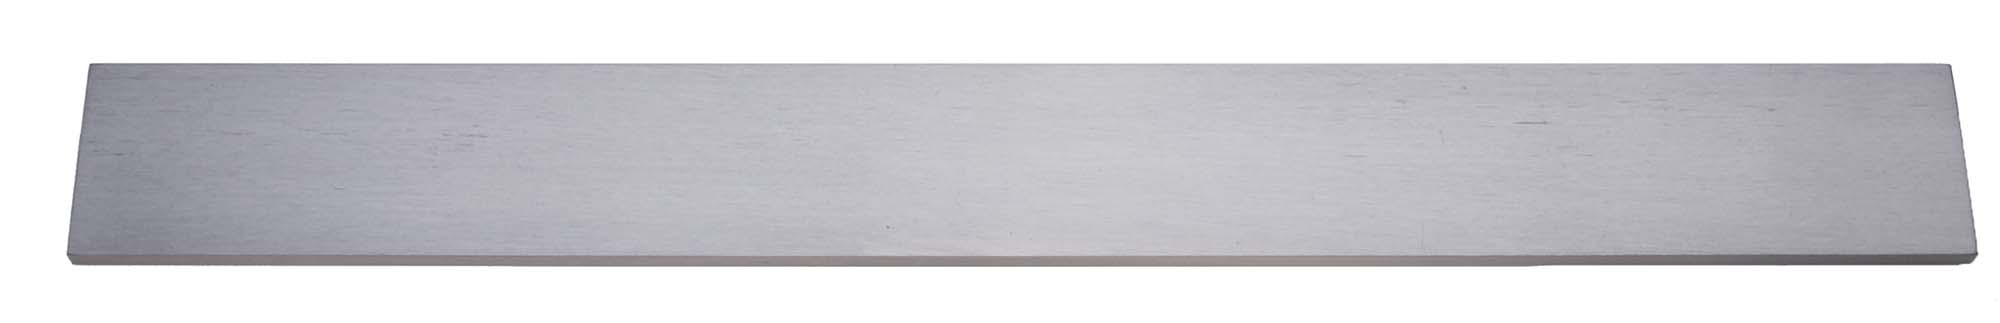 "PEC Tools 4800-012 12"" Square Straight Edge"